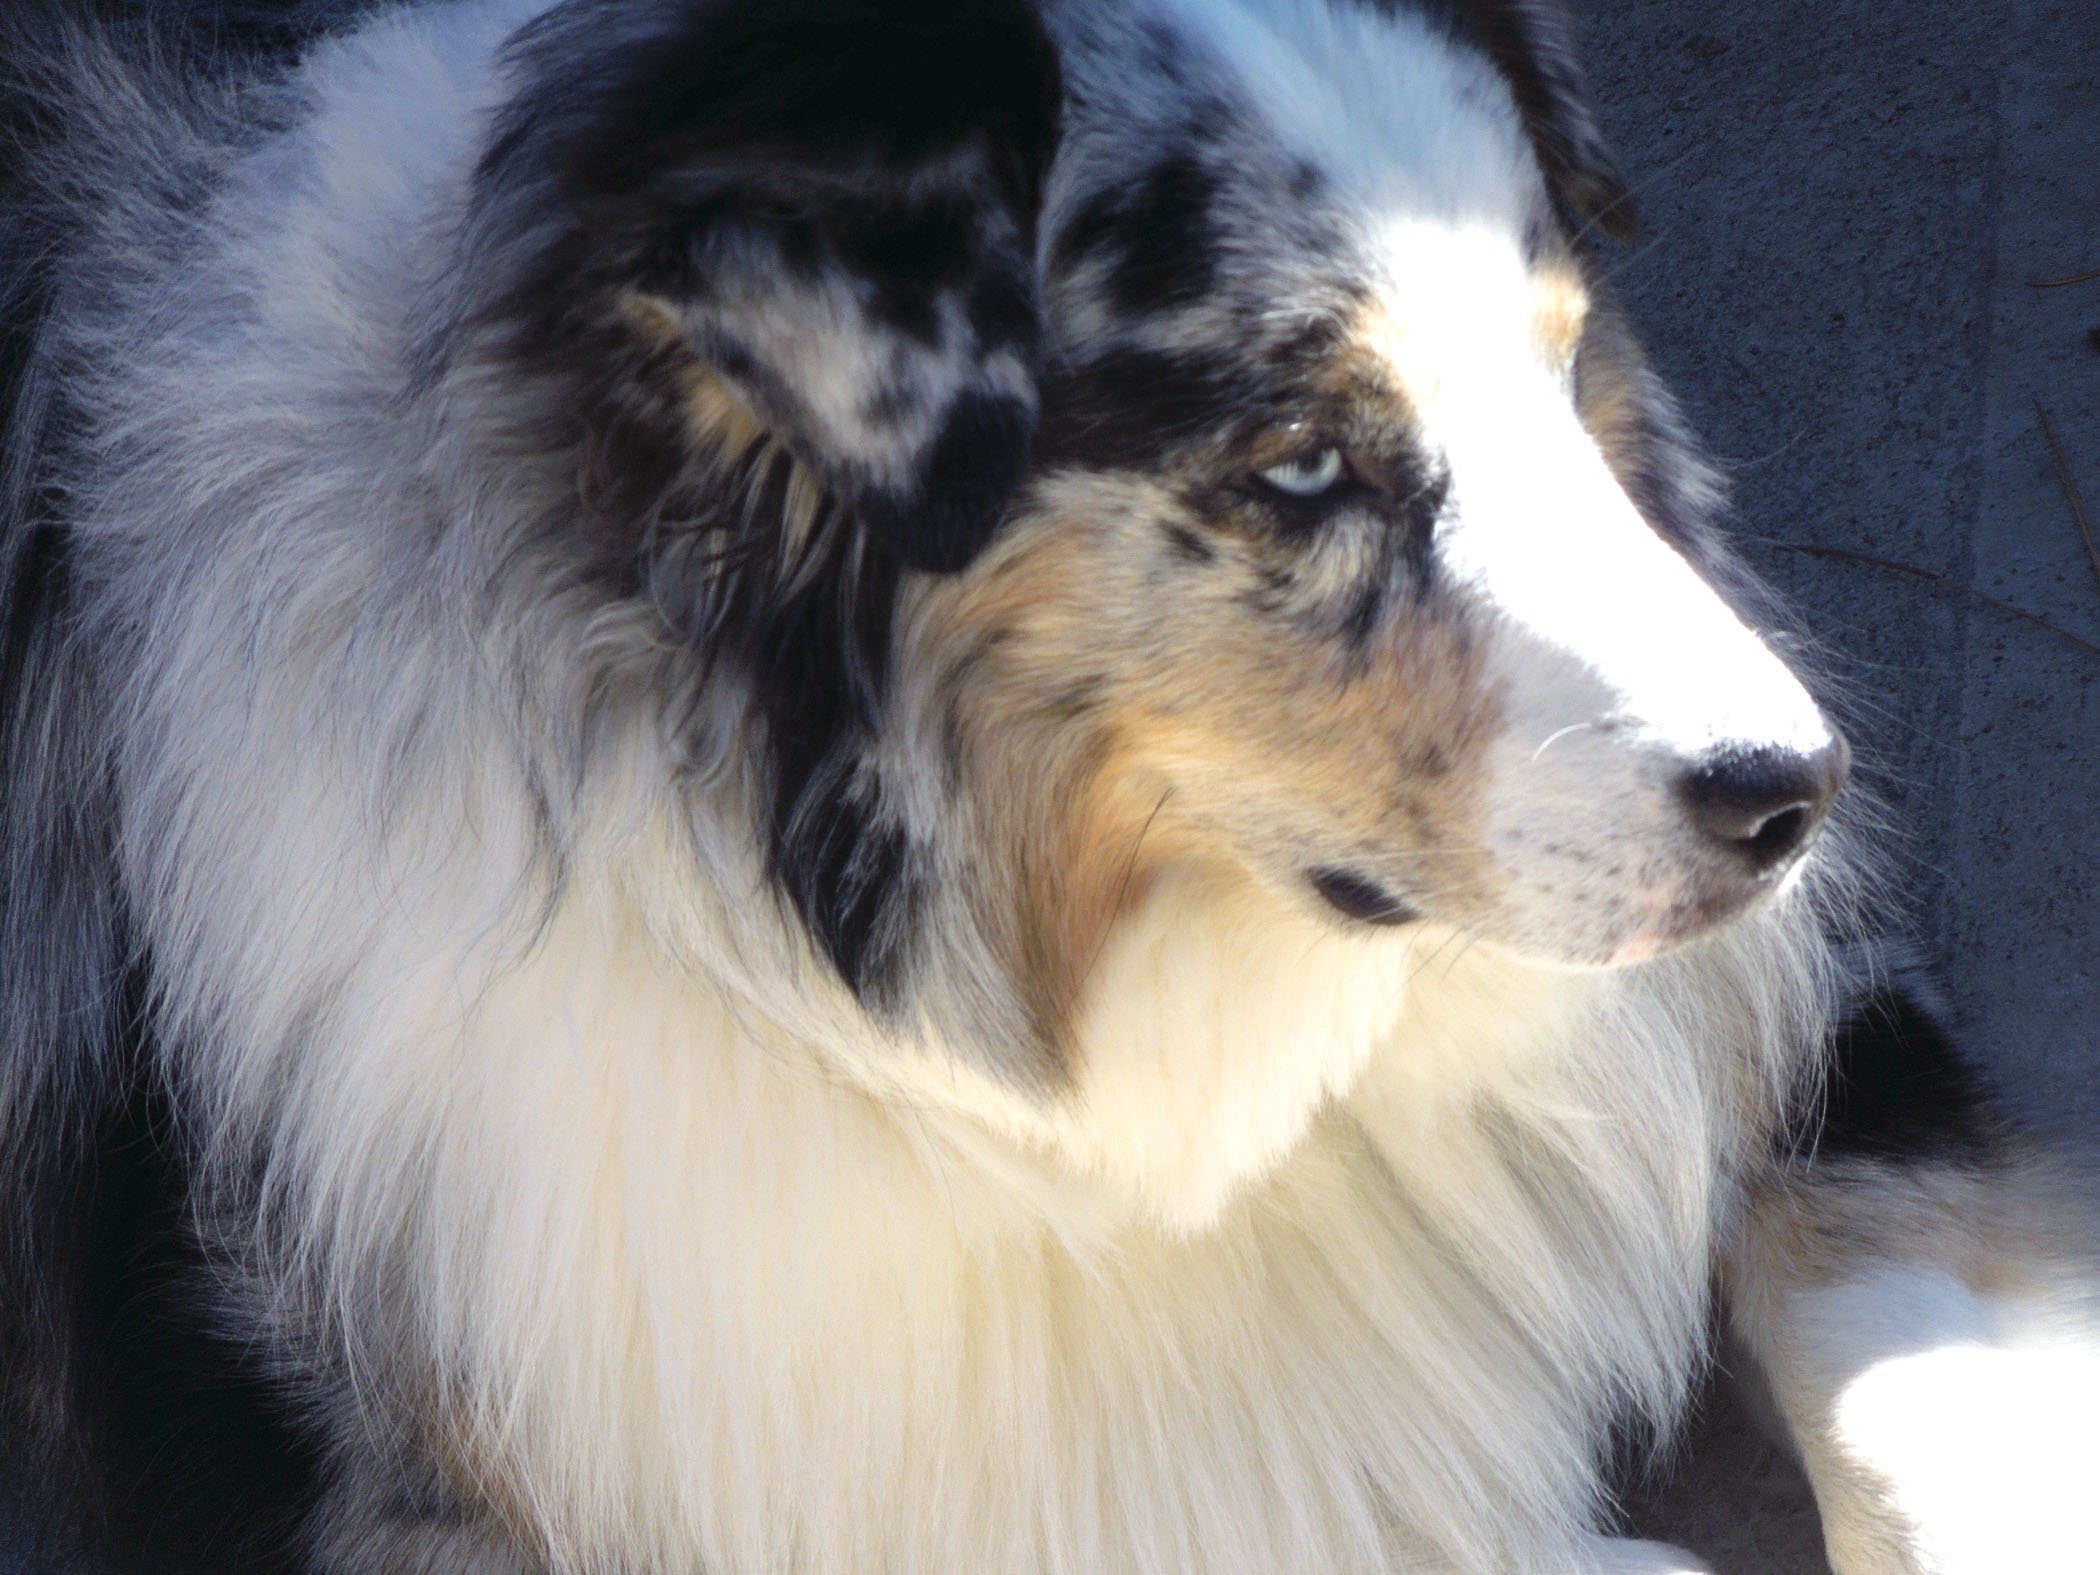 Is there any dog more beautiful than an Australian shepherd?